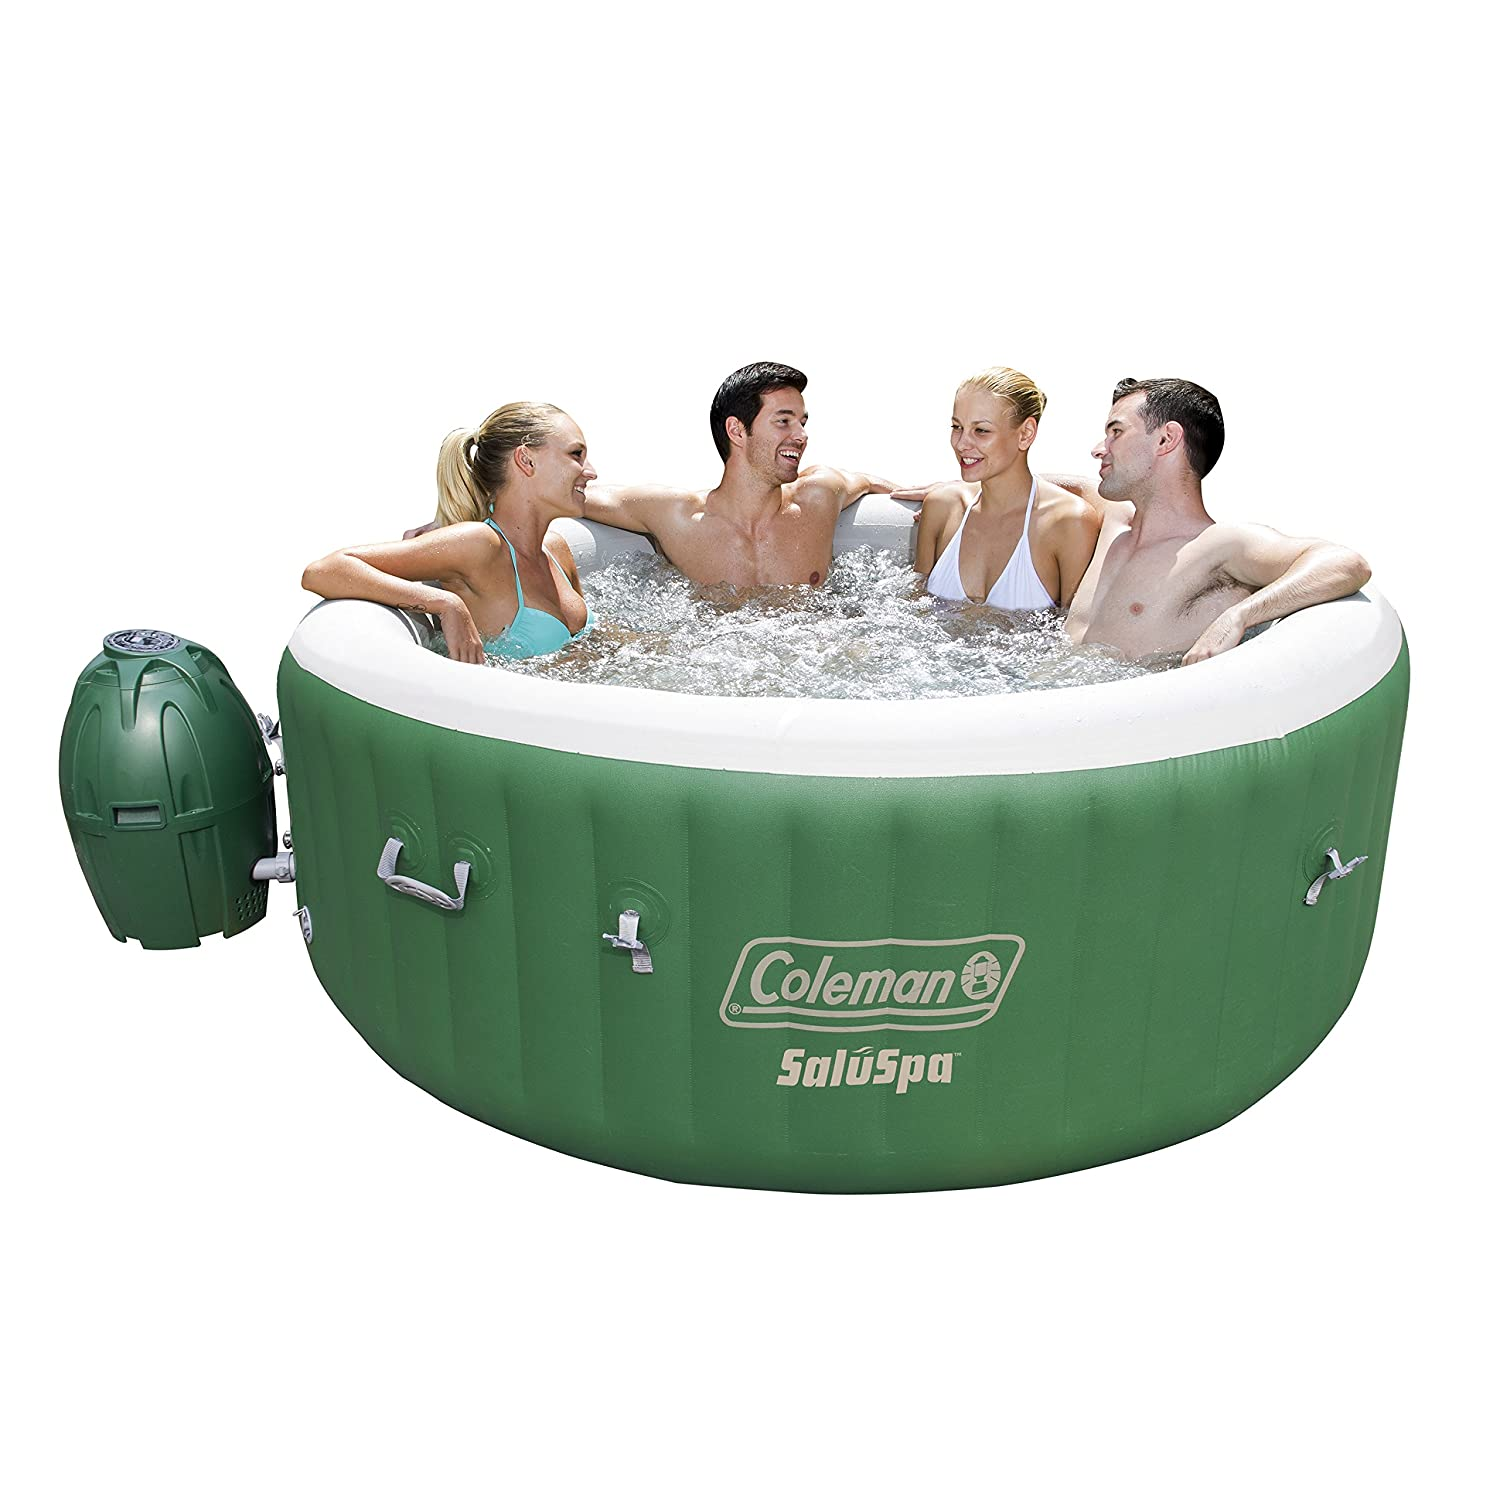 Top 10 Best Portable Hot Tubs (2020 Reviews & Buying Guide) 3